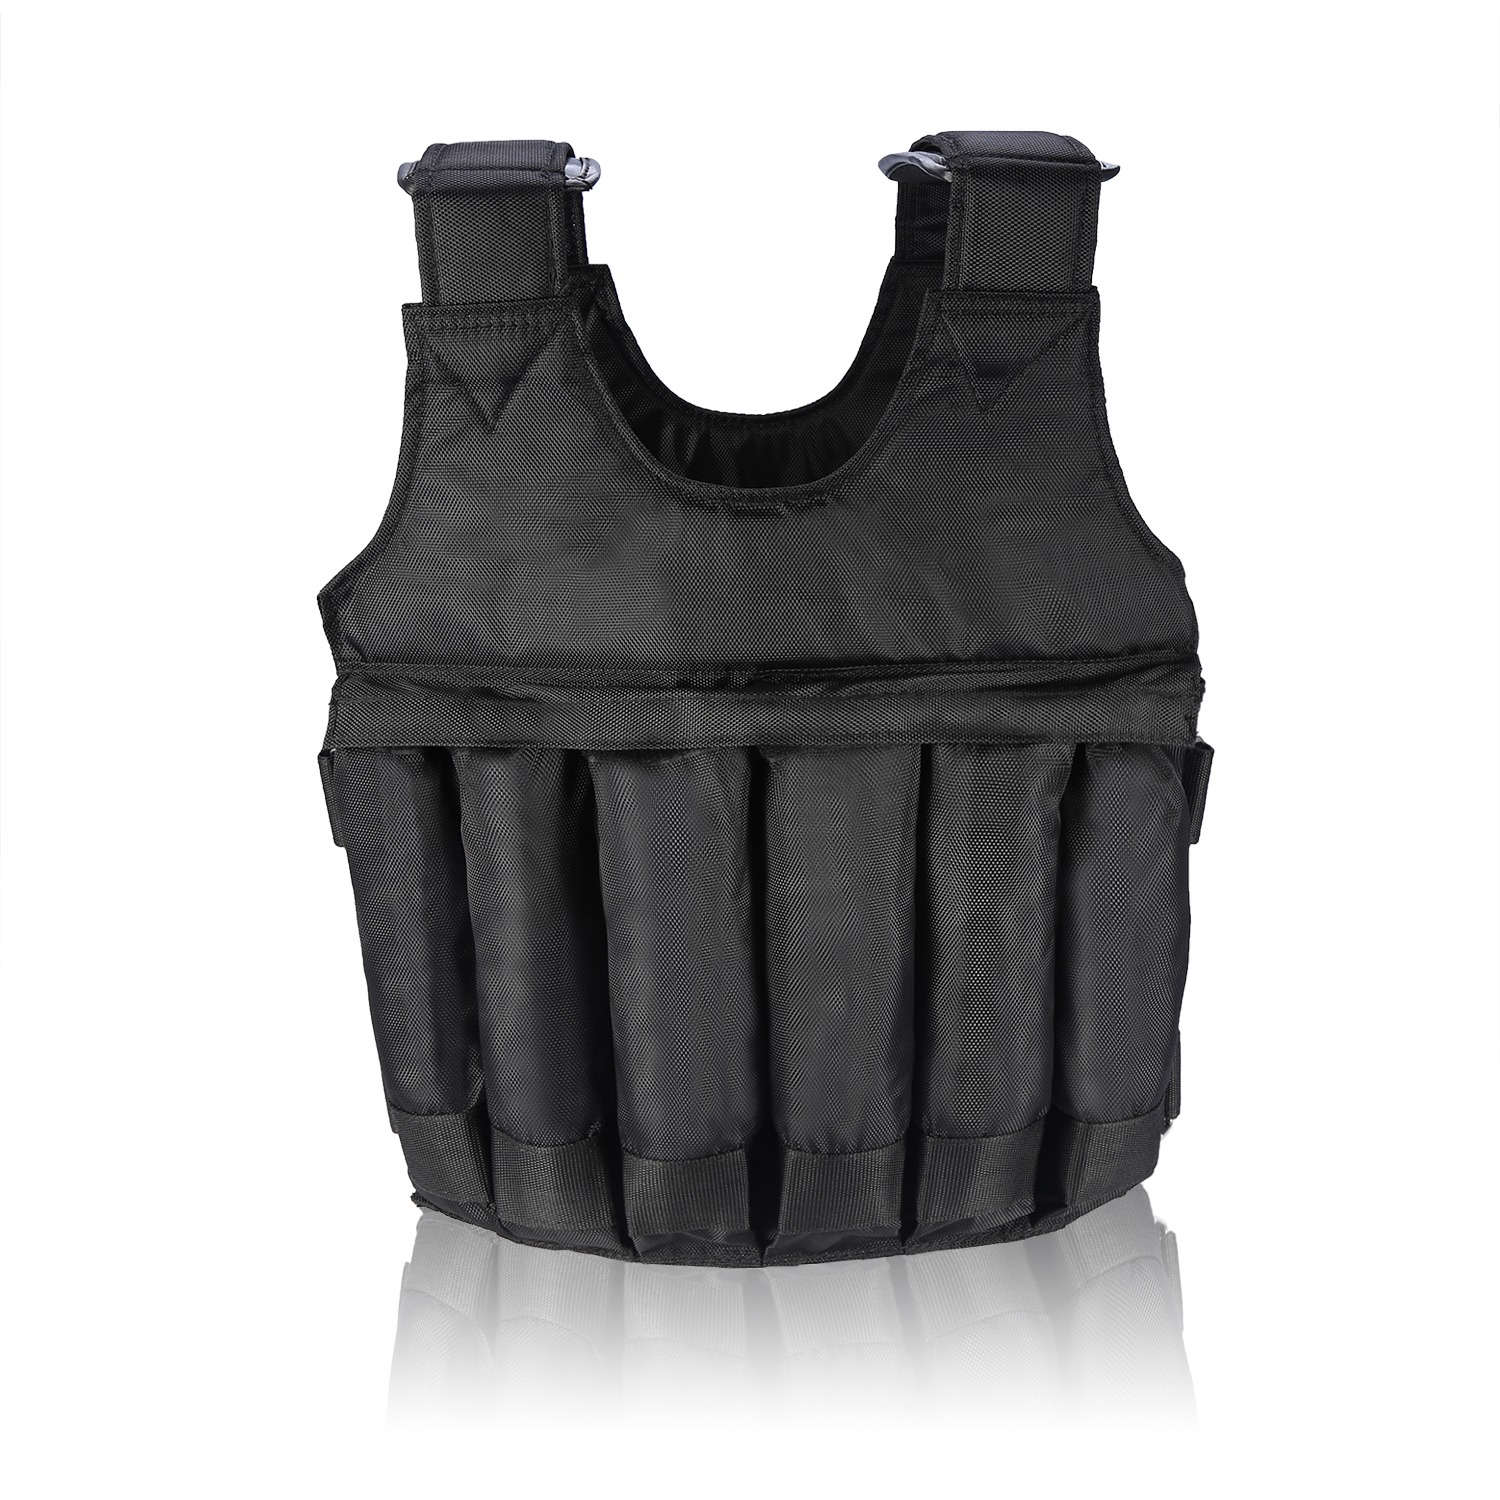 Weighted-Vest-44-110lbs-Weight-Workout-Exercise-Body-Training-Crossfit-Equipment thumbnail 22